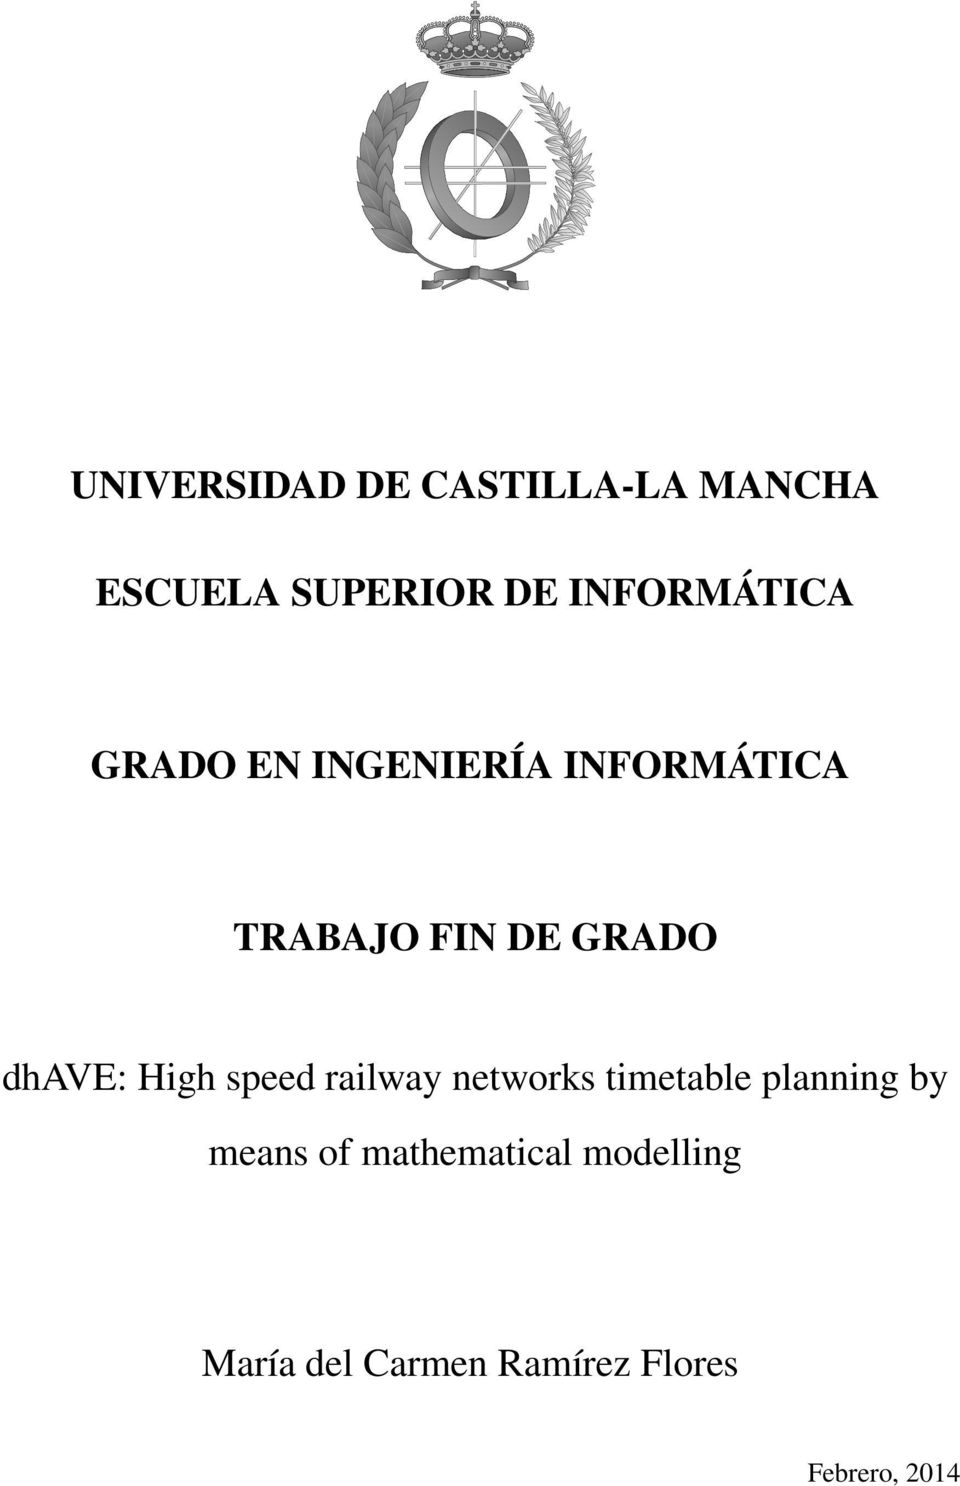 GRADO dhave: High speed railway networks timetable planning by